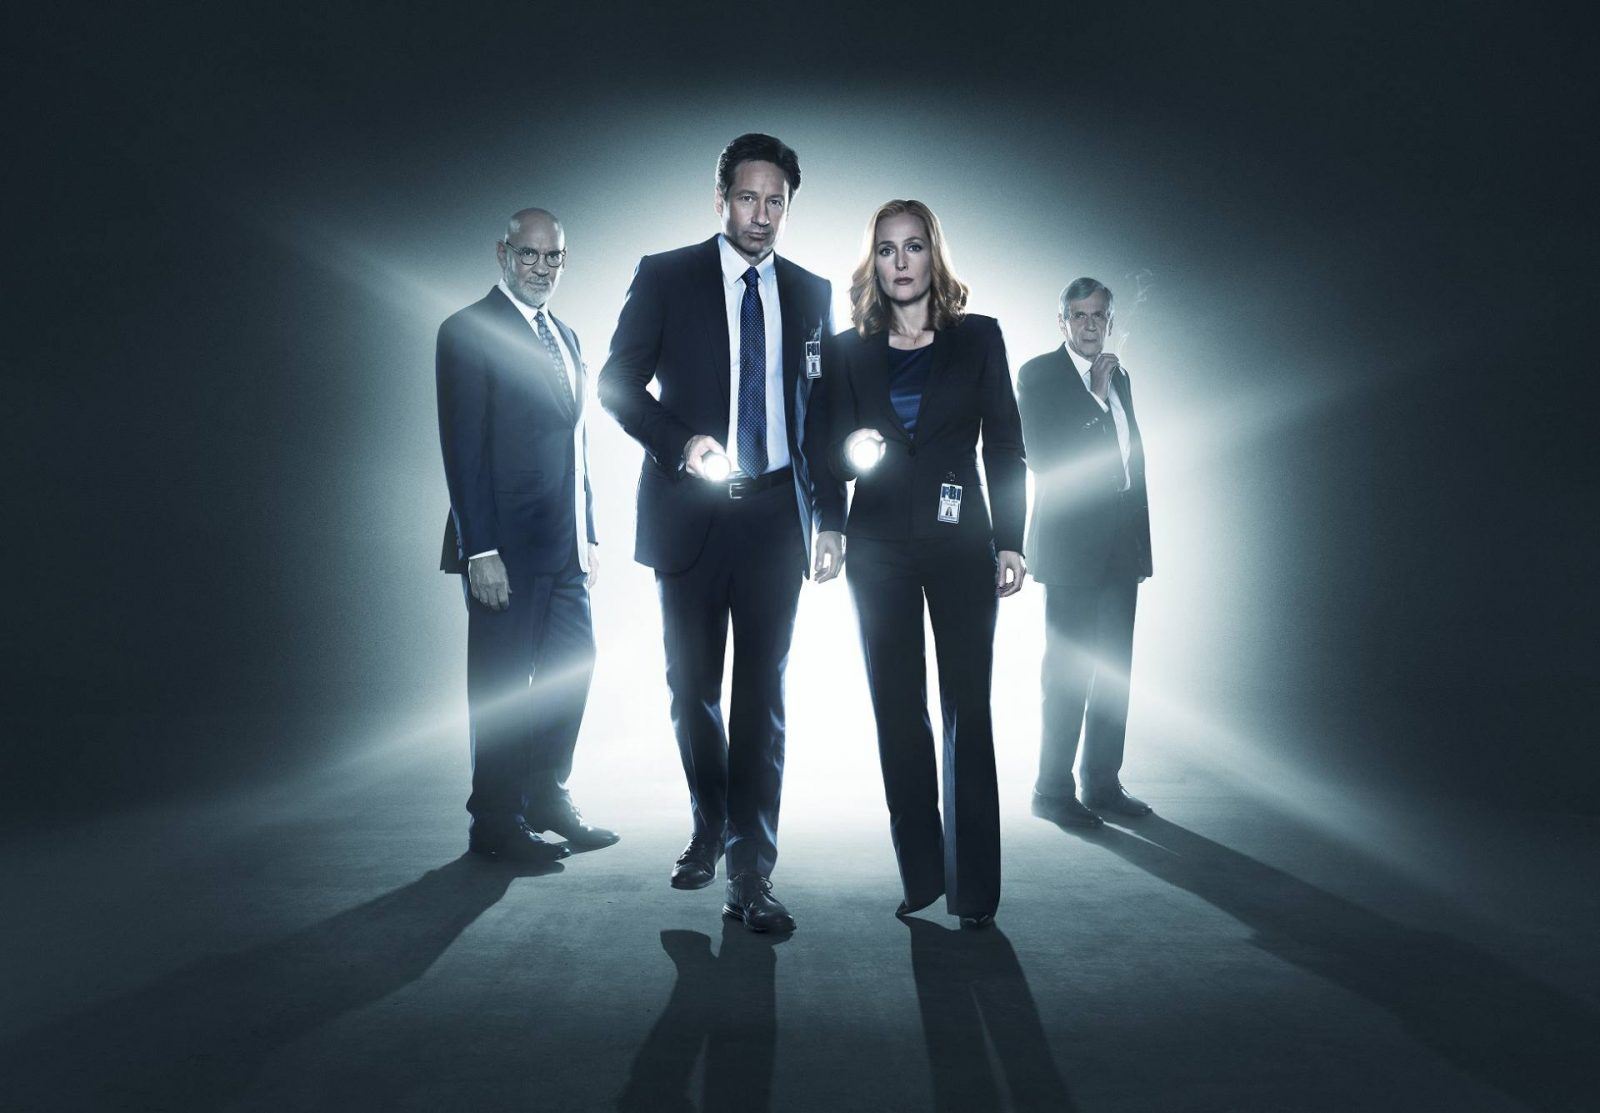 tv review: the x-files, channel 5;